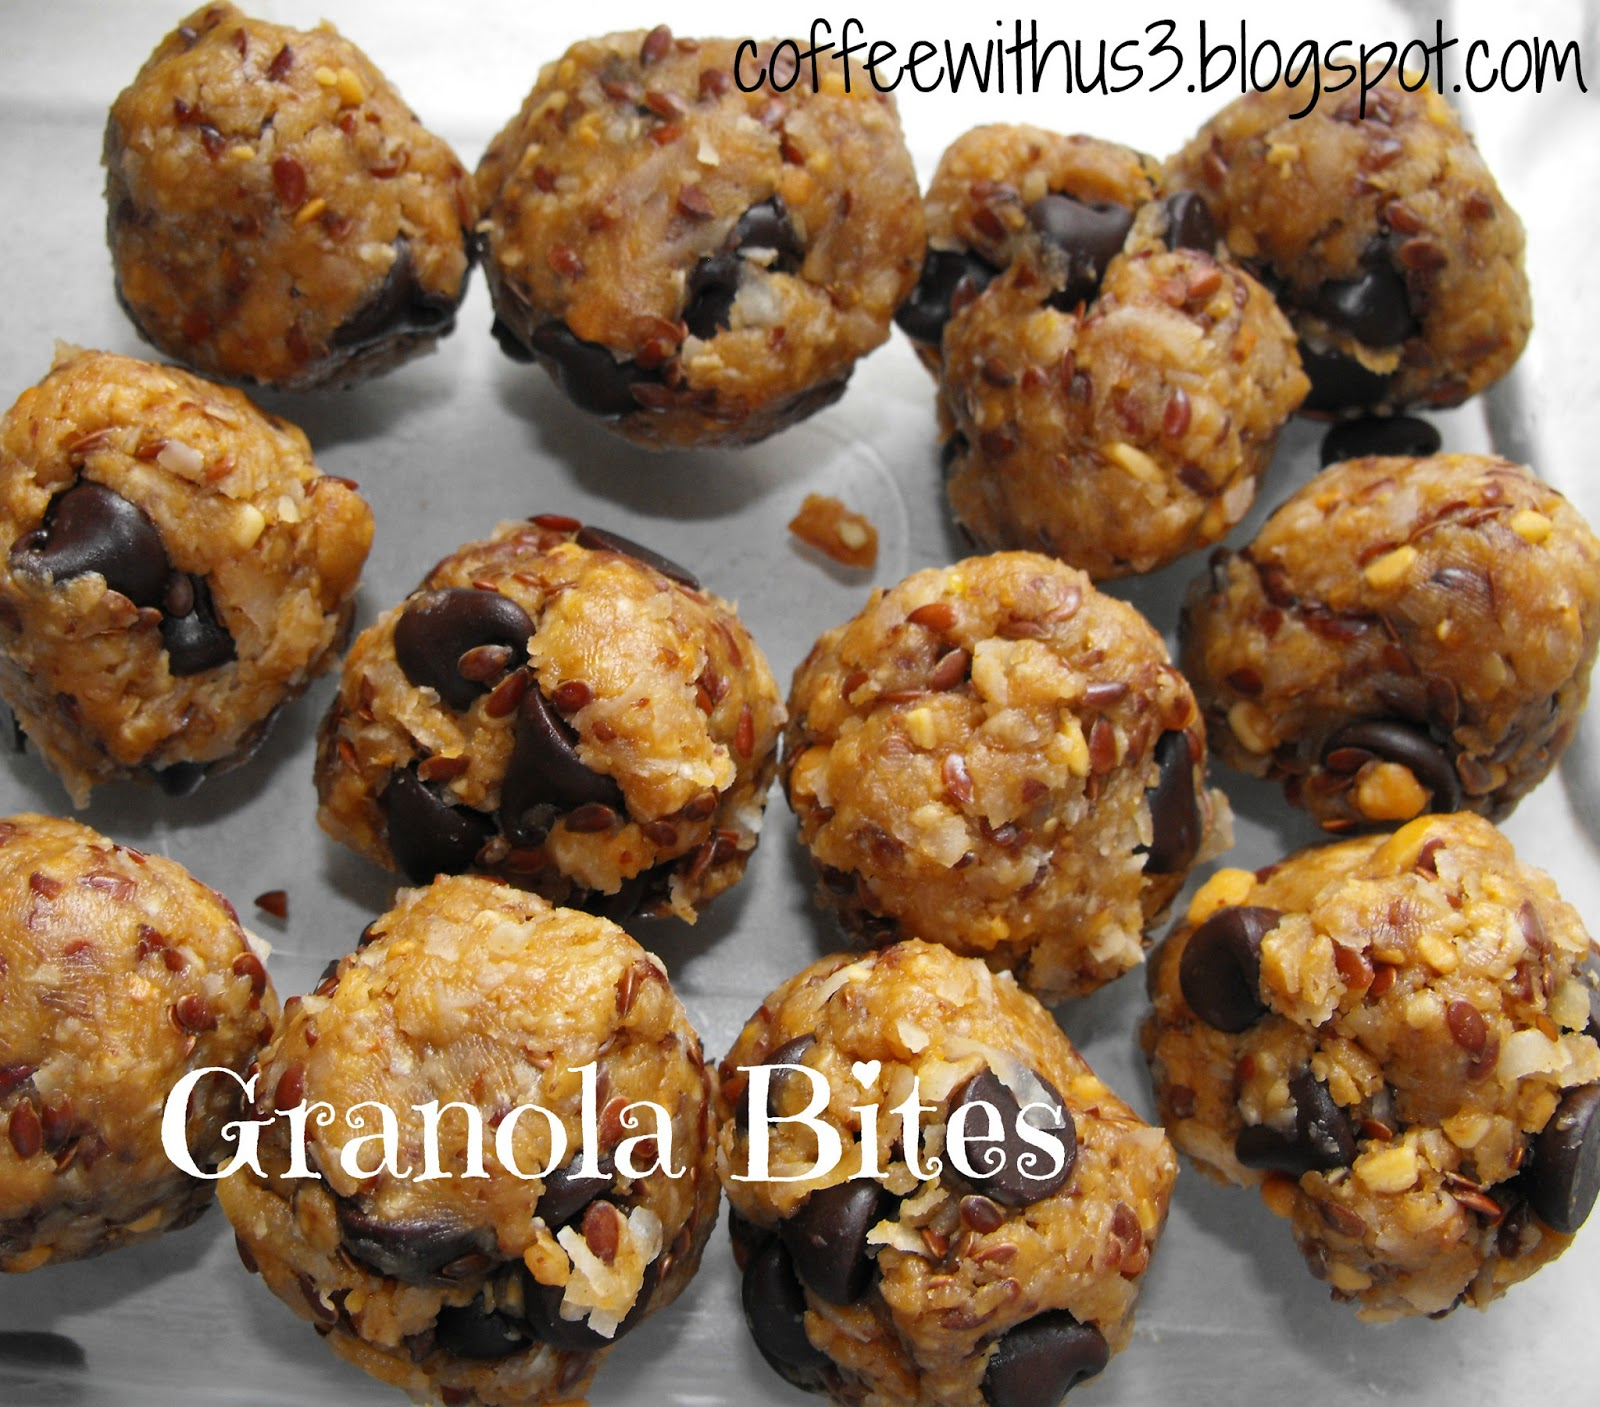 ... recipes for energy bites granola bites or whatever you d like to